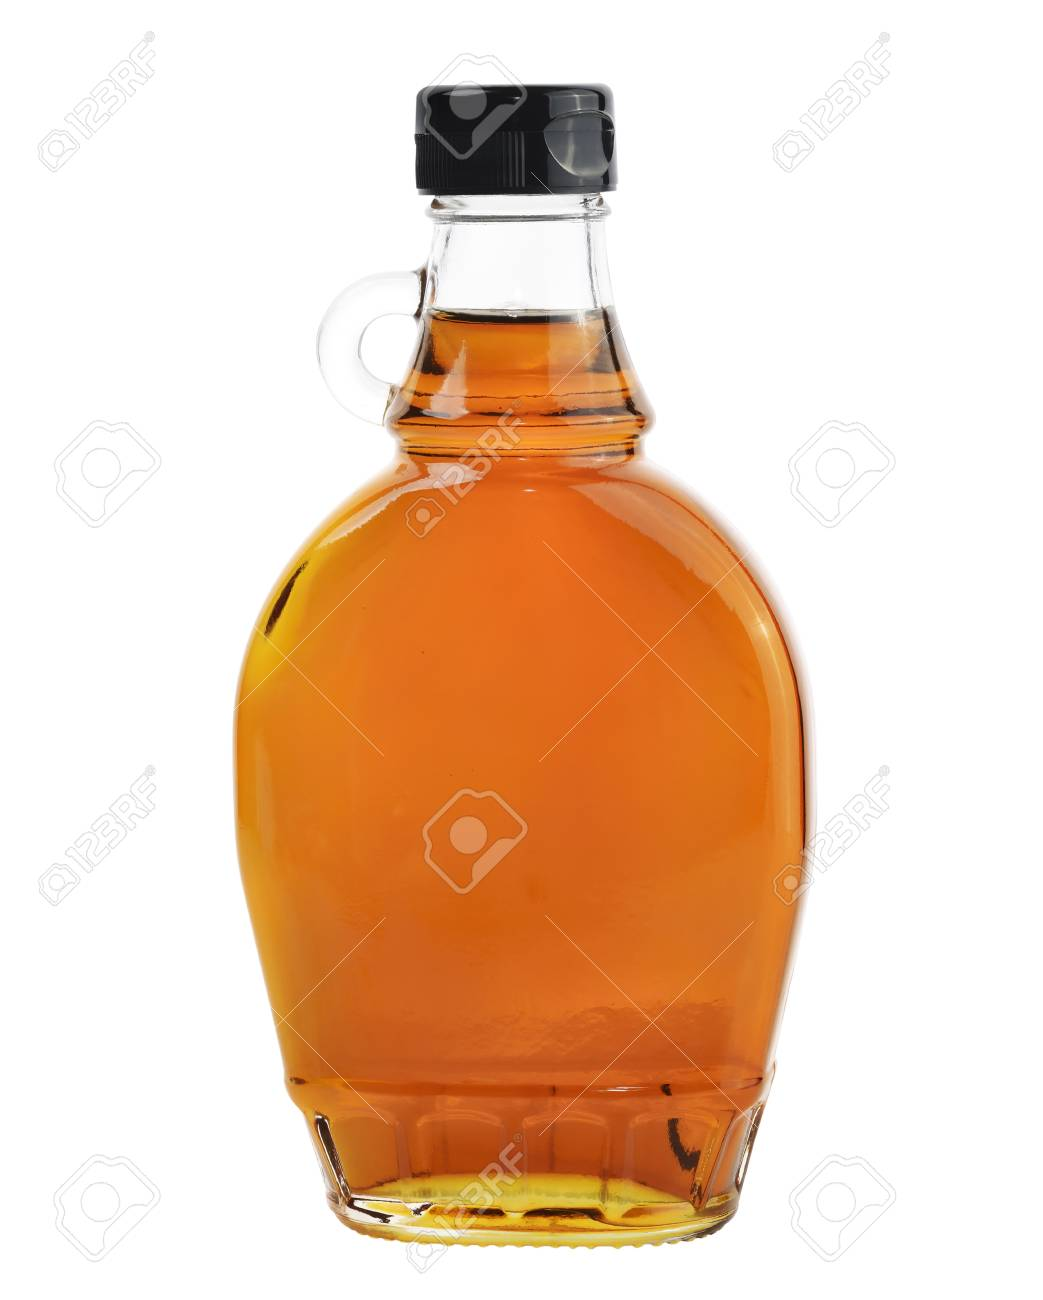 4a66599f4d6 Bottle Of Natural Maple Syrup Isolated On White Background. Stock Photo -  28069315